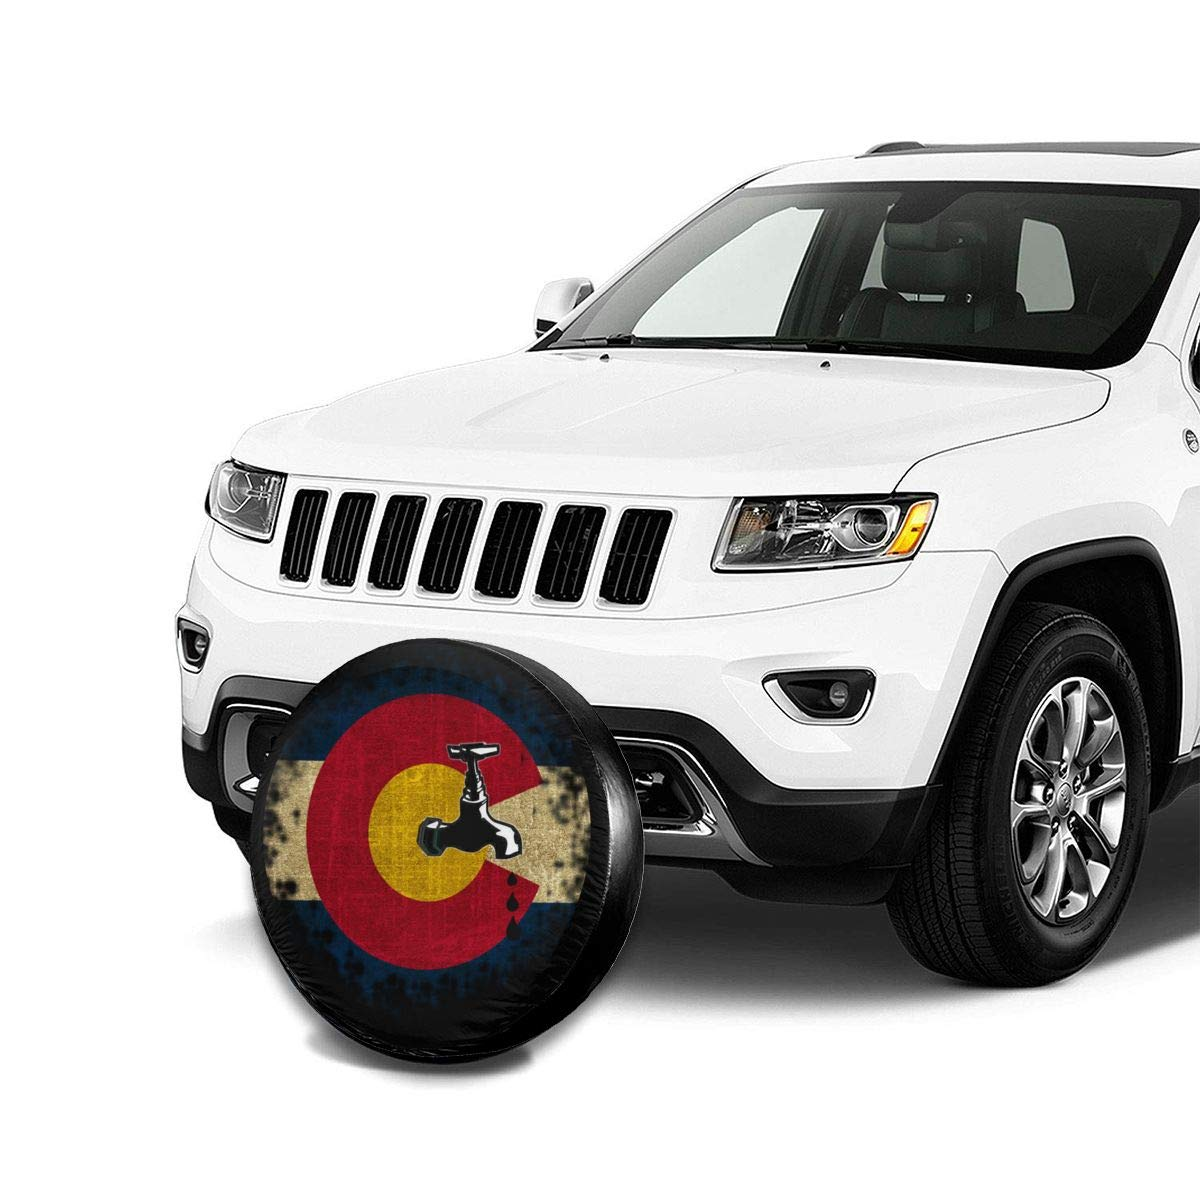 14 15 16 17 RV Blirh American Flag US Navy Universal Spare Wheel Tire Cover Fit for Trailer SUV and Various Vehicles